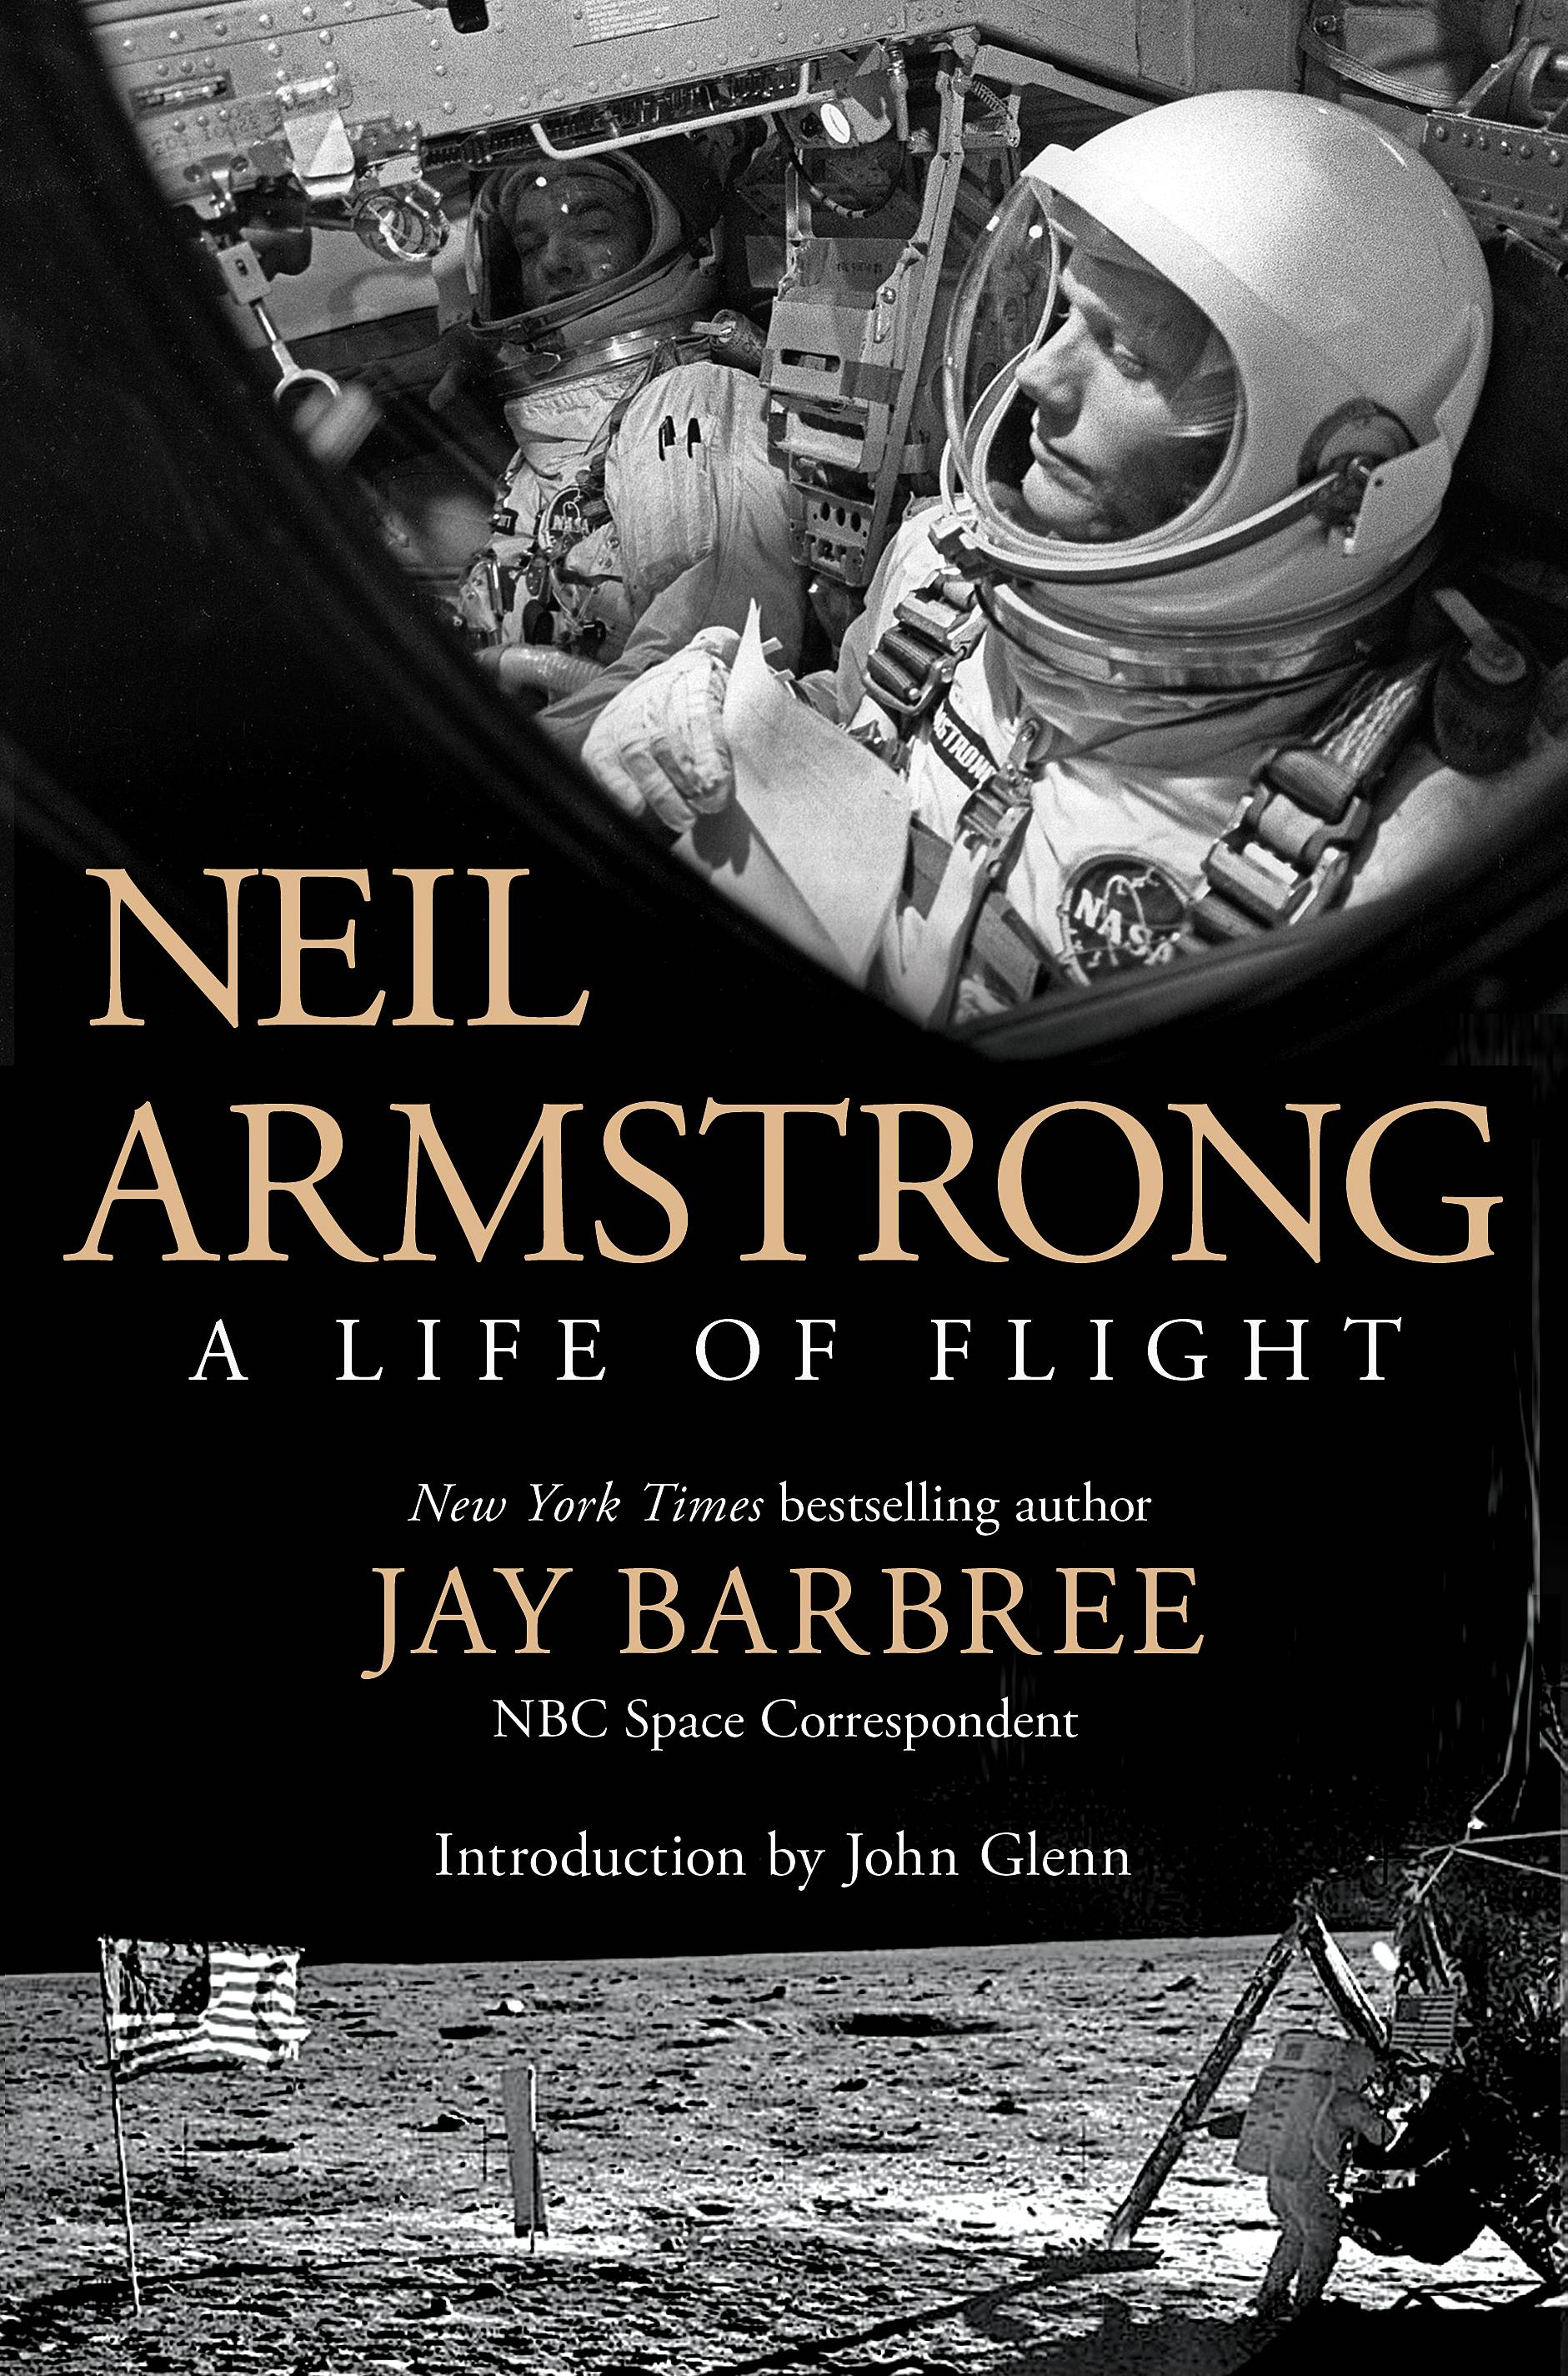 "There's not a negative word about America's space hero in Jay Barbree's new book, ""Neil Armstrong: A Life of Flight."""